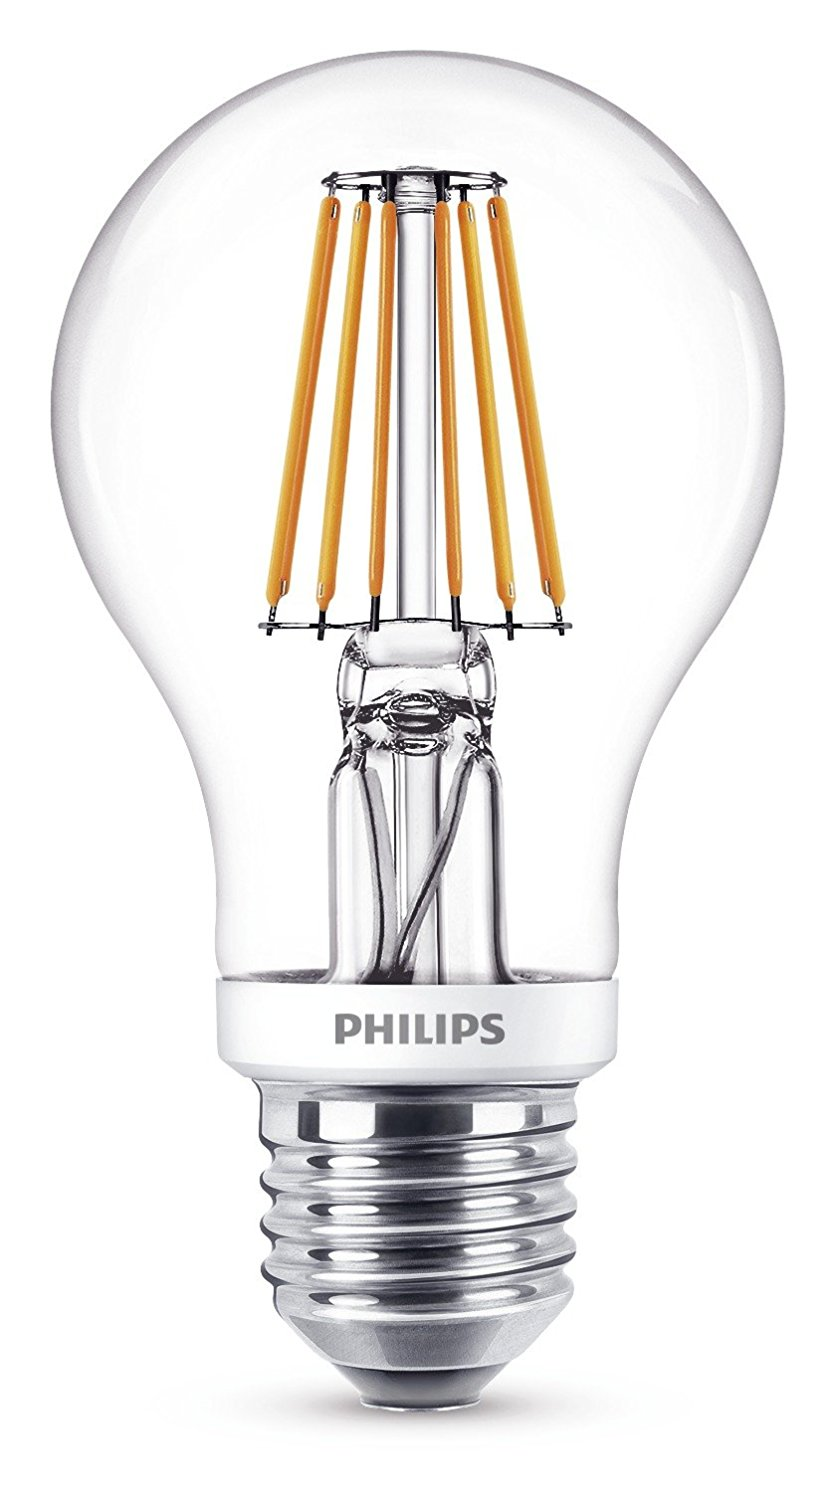 7 806 Bulb E27 Lumen Philips White About Details Screw Warm Lamp Led 5w60w AA60 Dimmable rxeCBWod